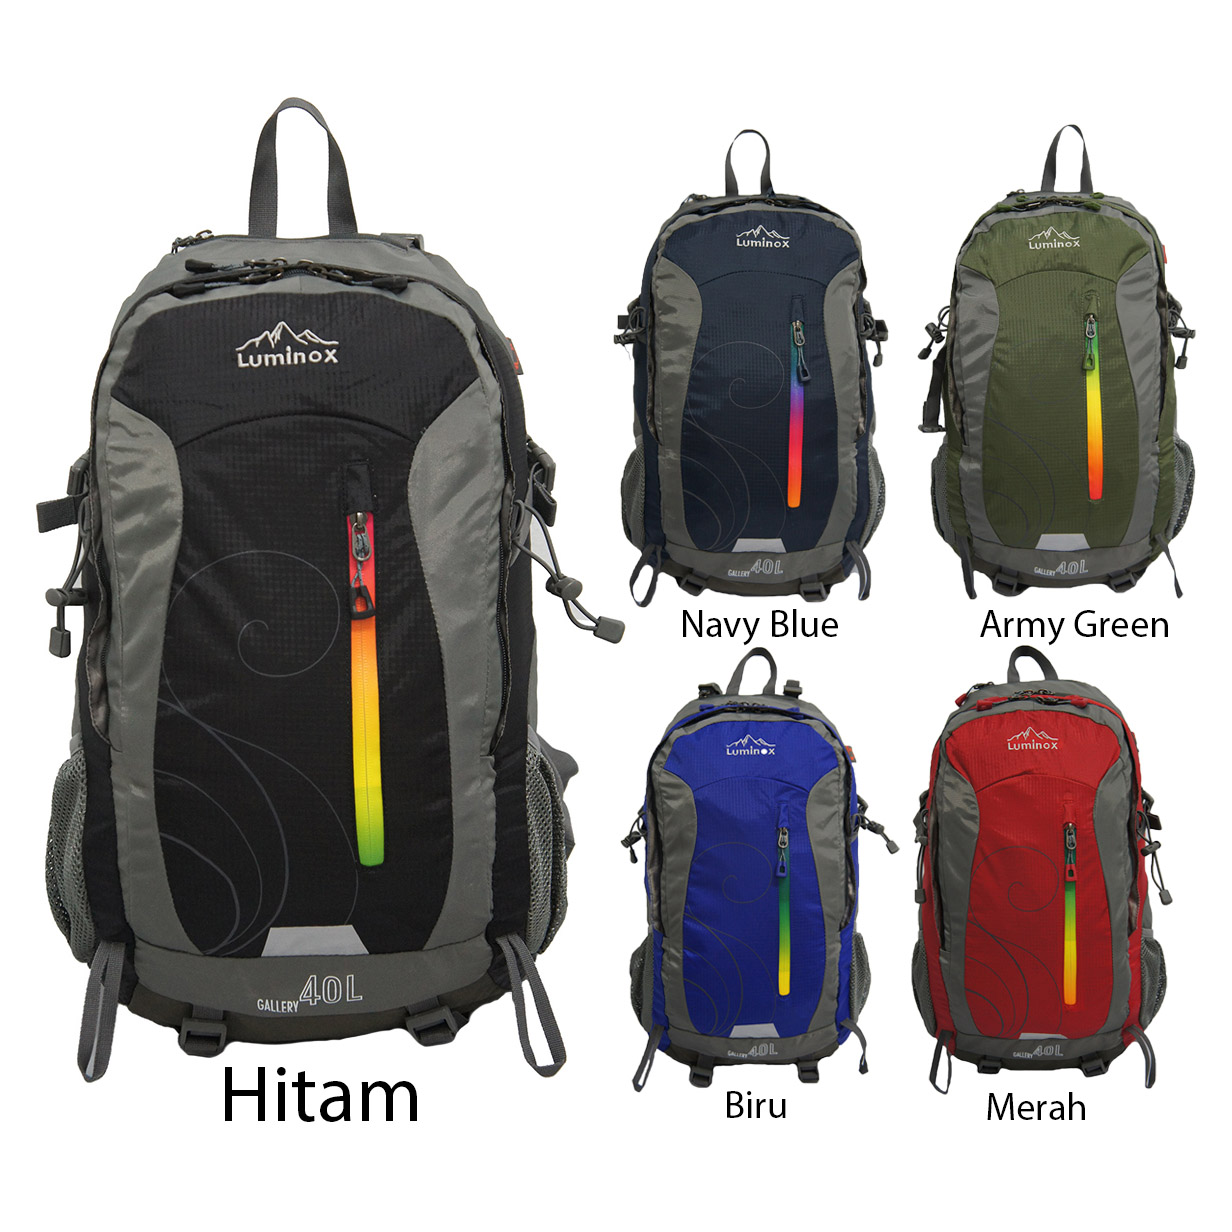 Jual Tas Luminox 5027 - 40L/Ransel/ Hiking Backpack (Free rain Cover)